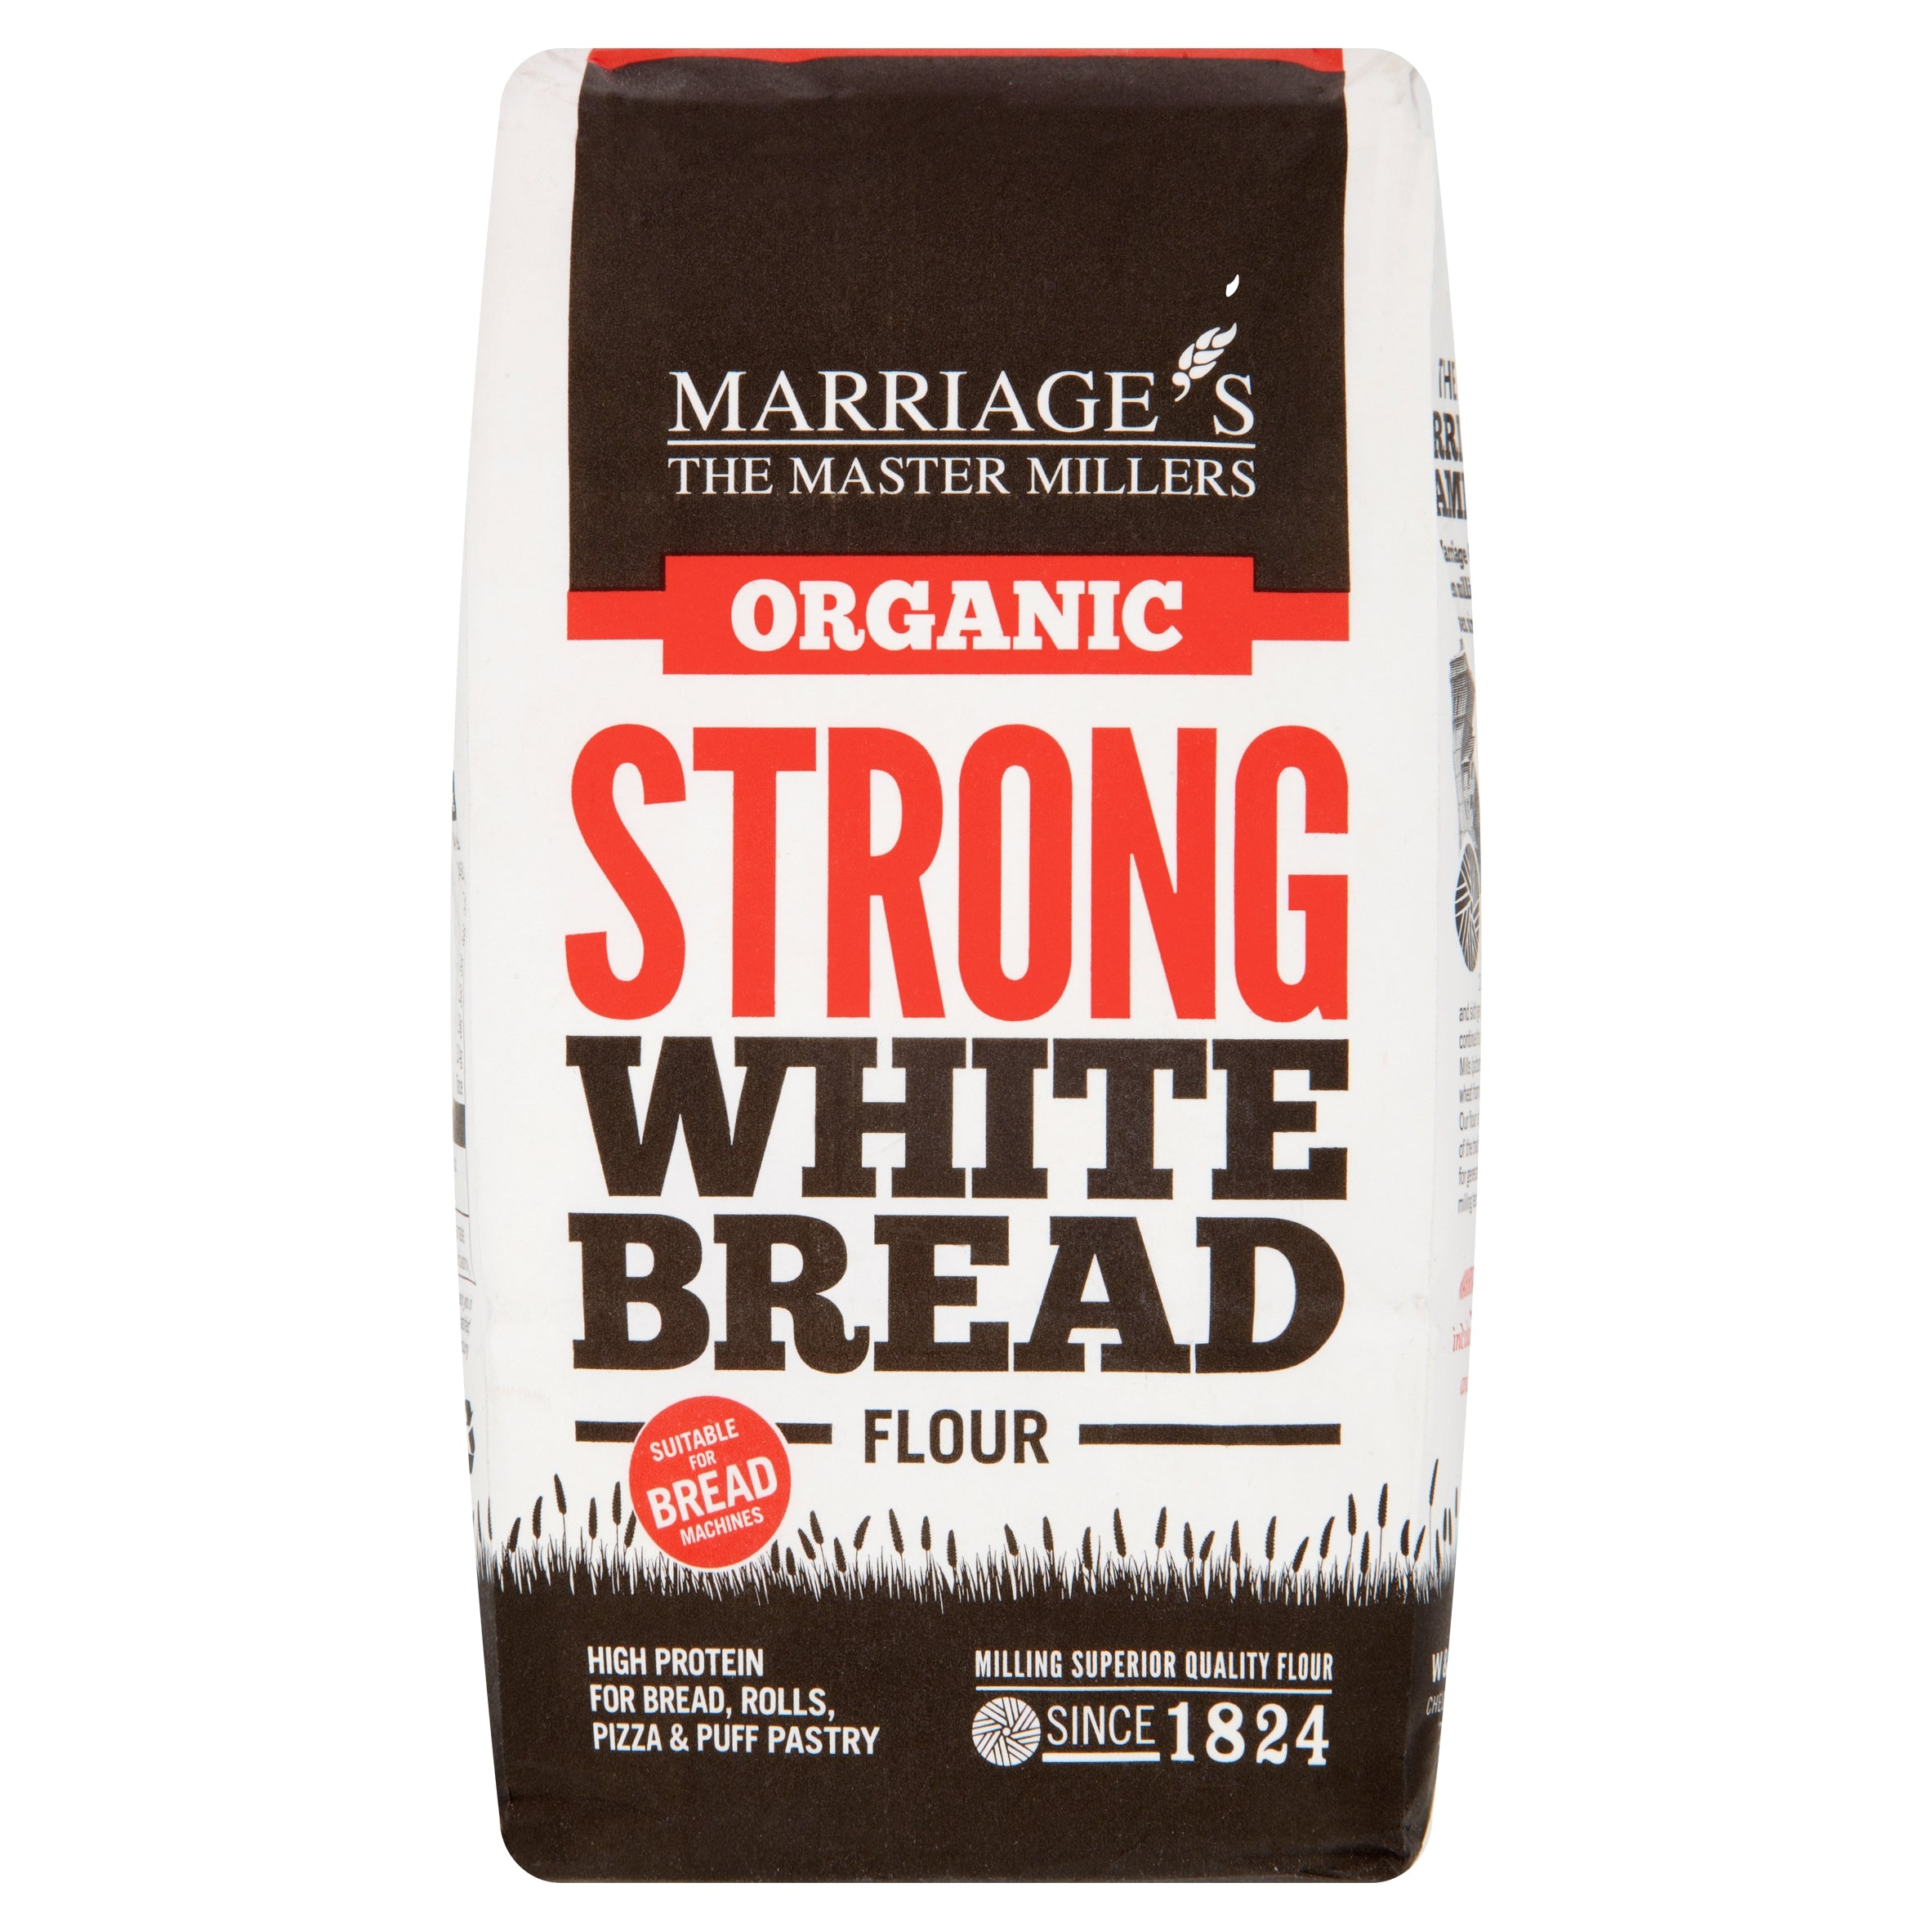 Marriages Organic Strong White Bread Flour - 1kg - Flour 2 Door